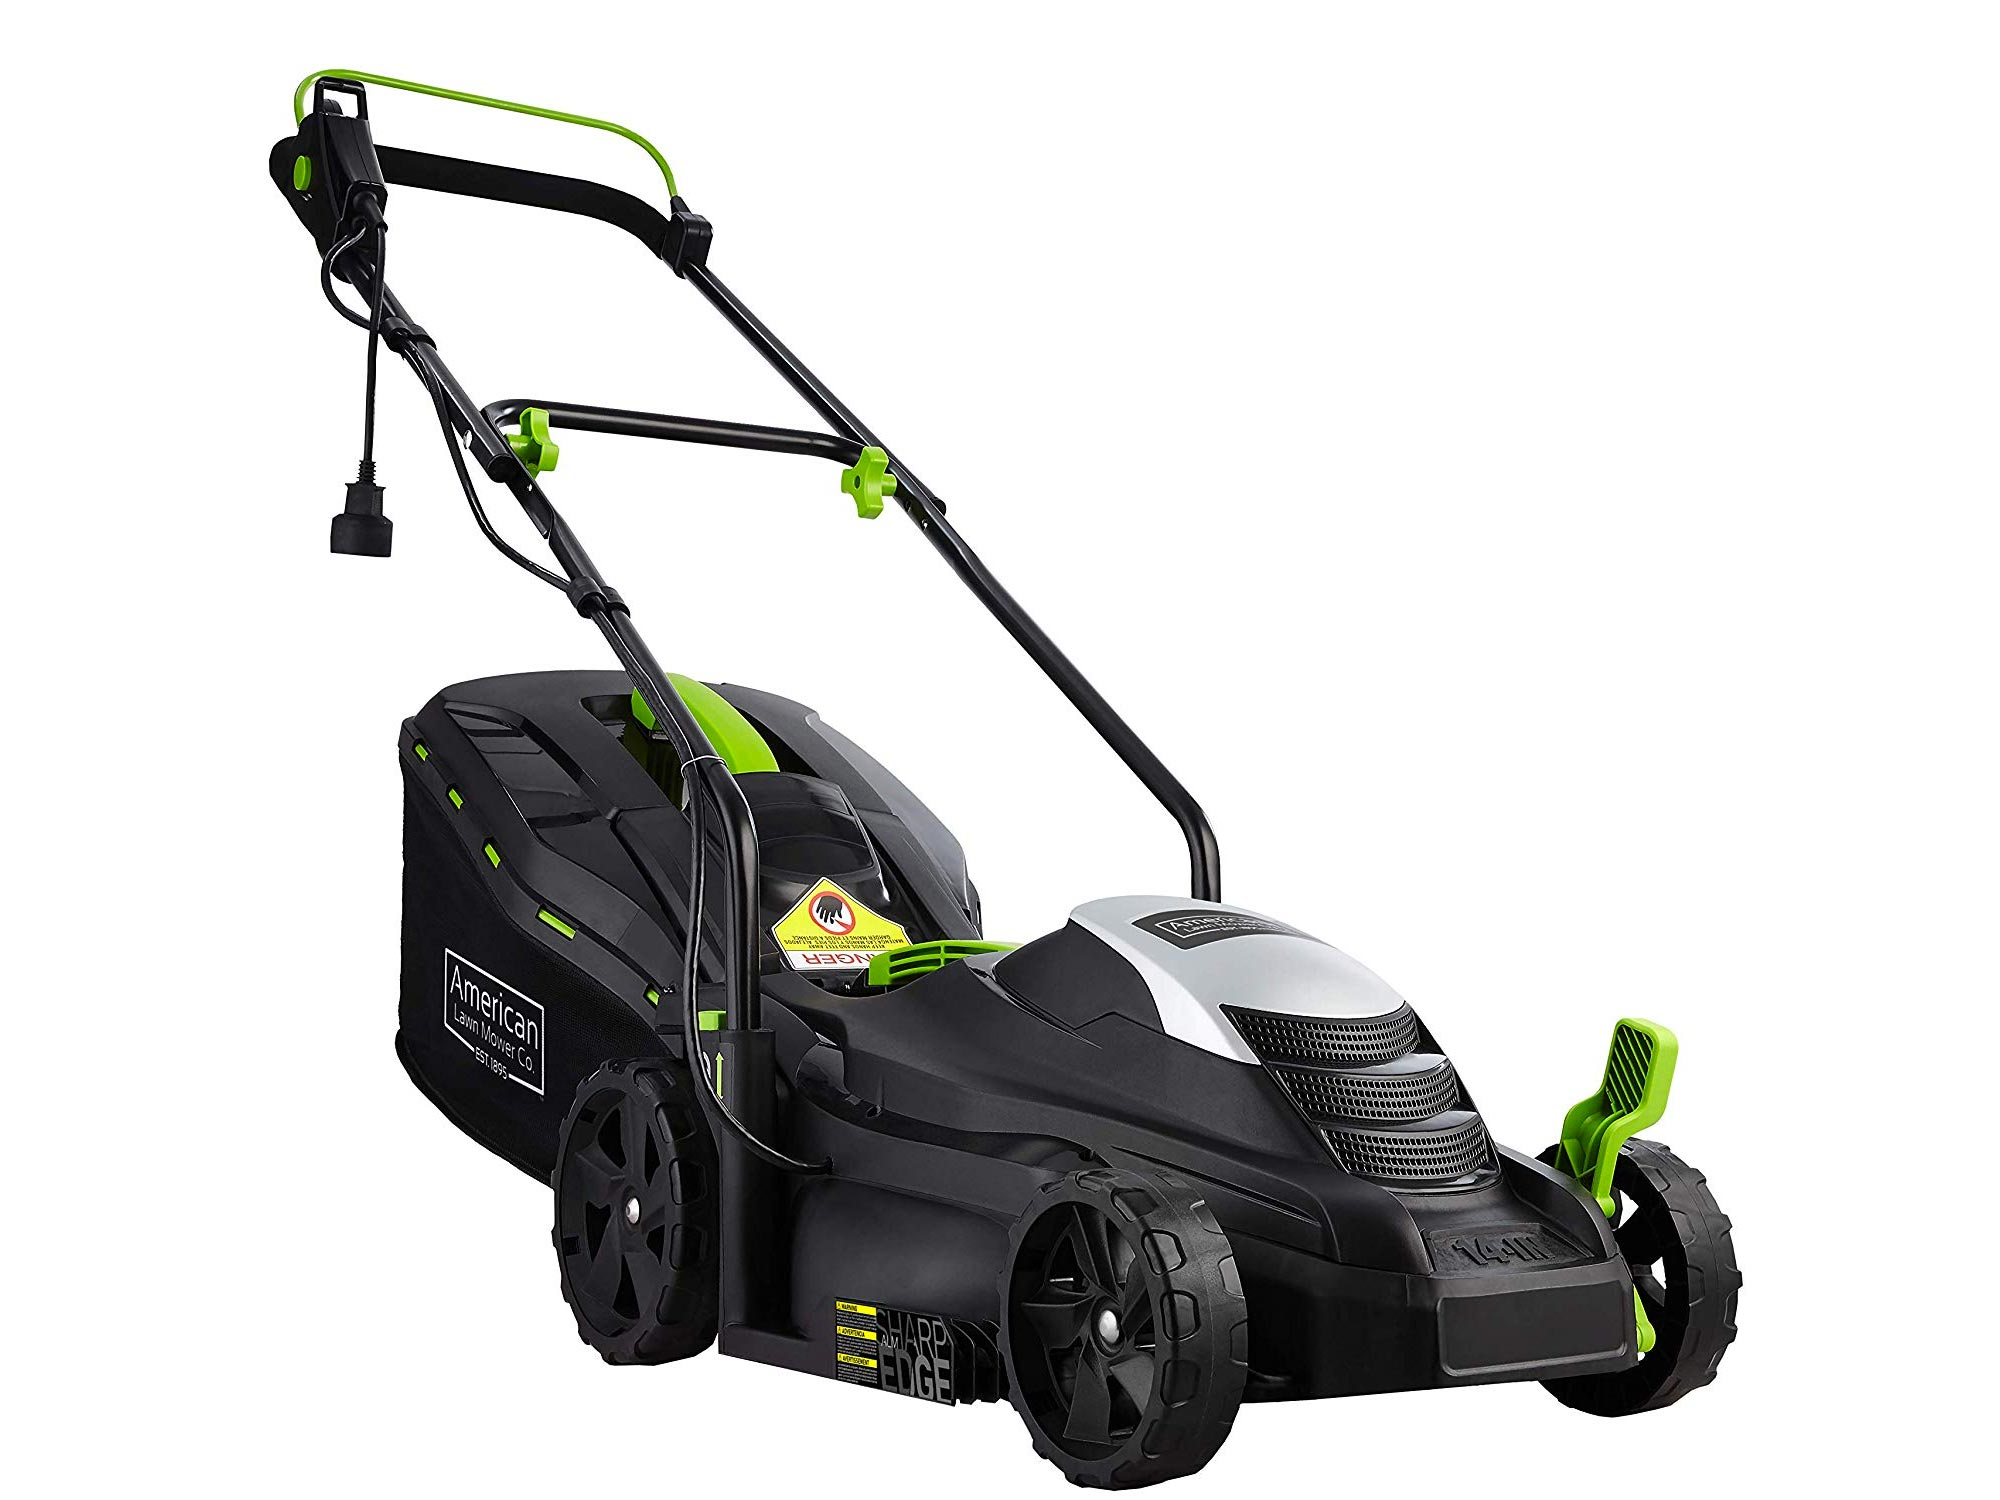 American Lawn Mower Company 14-Inch 11-Amp Corded Electric Lawn Mower